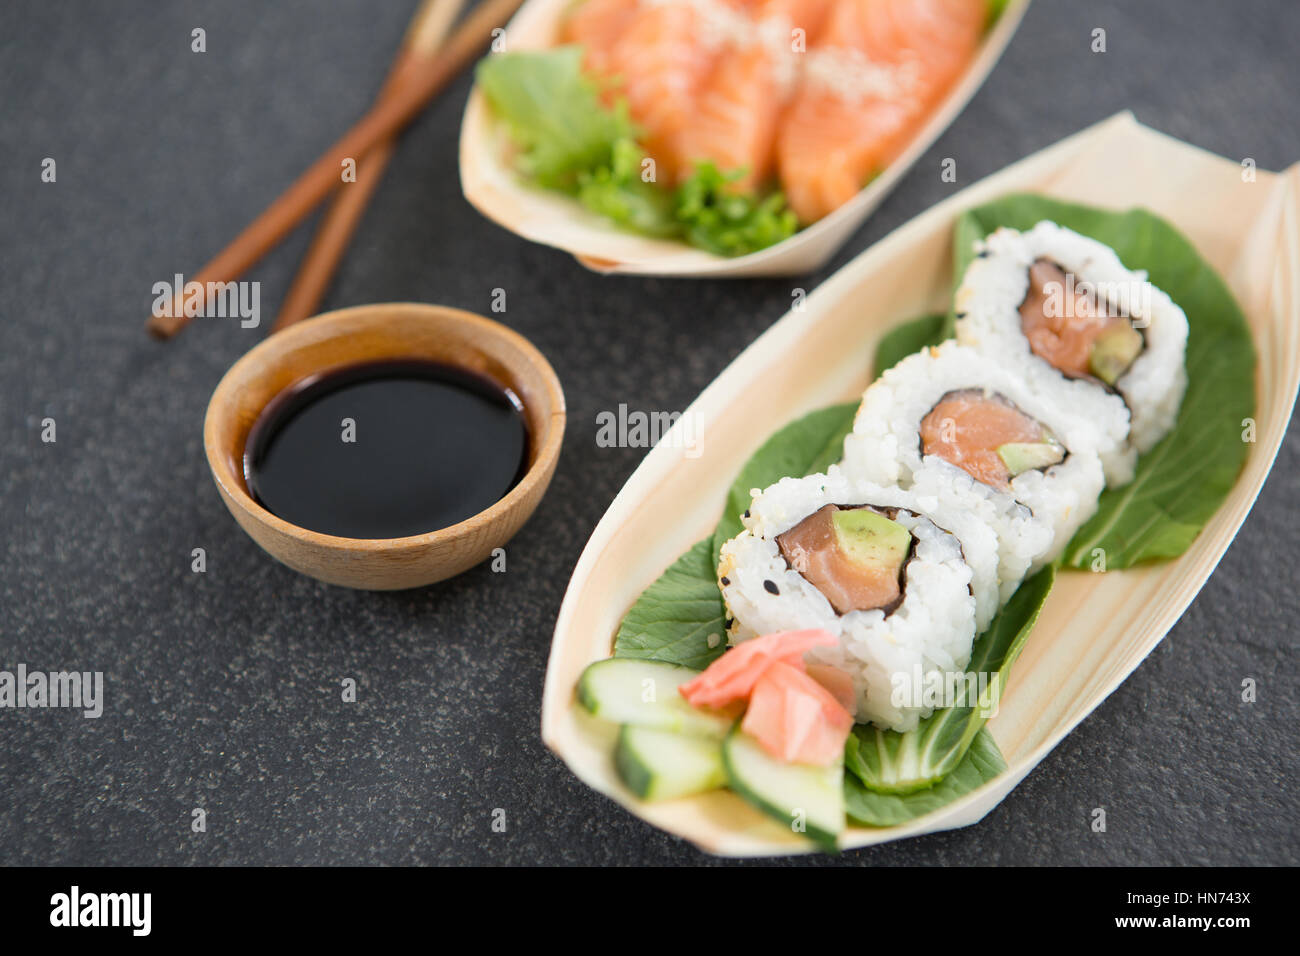 Sushi on boat shaped plate with chopsticks and sauce Stock Photo